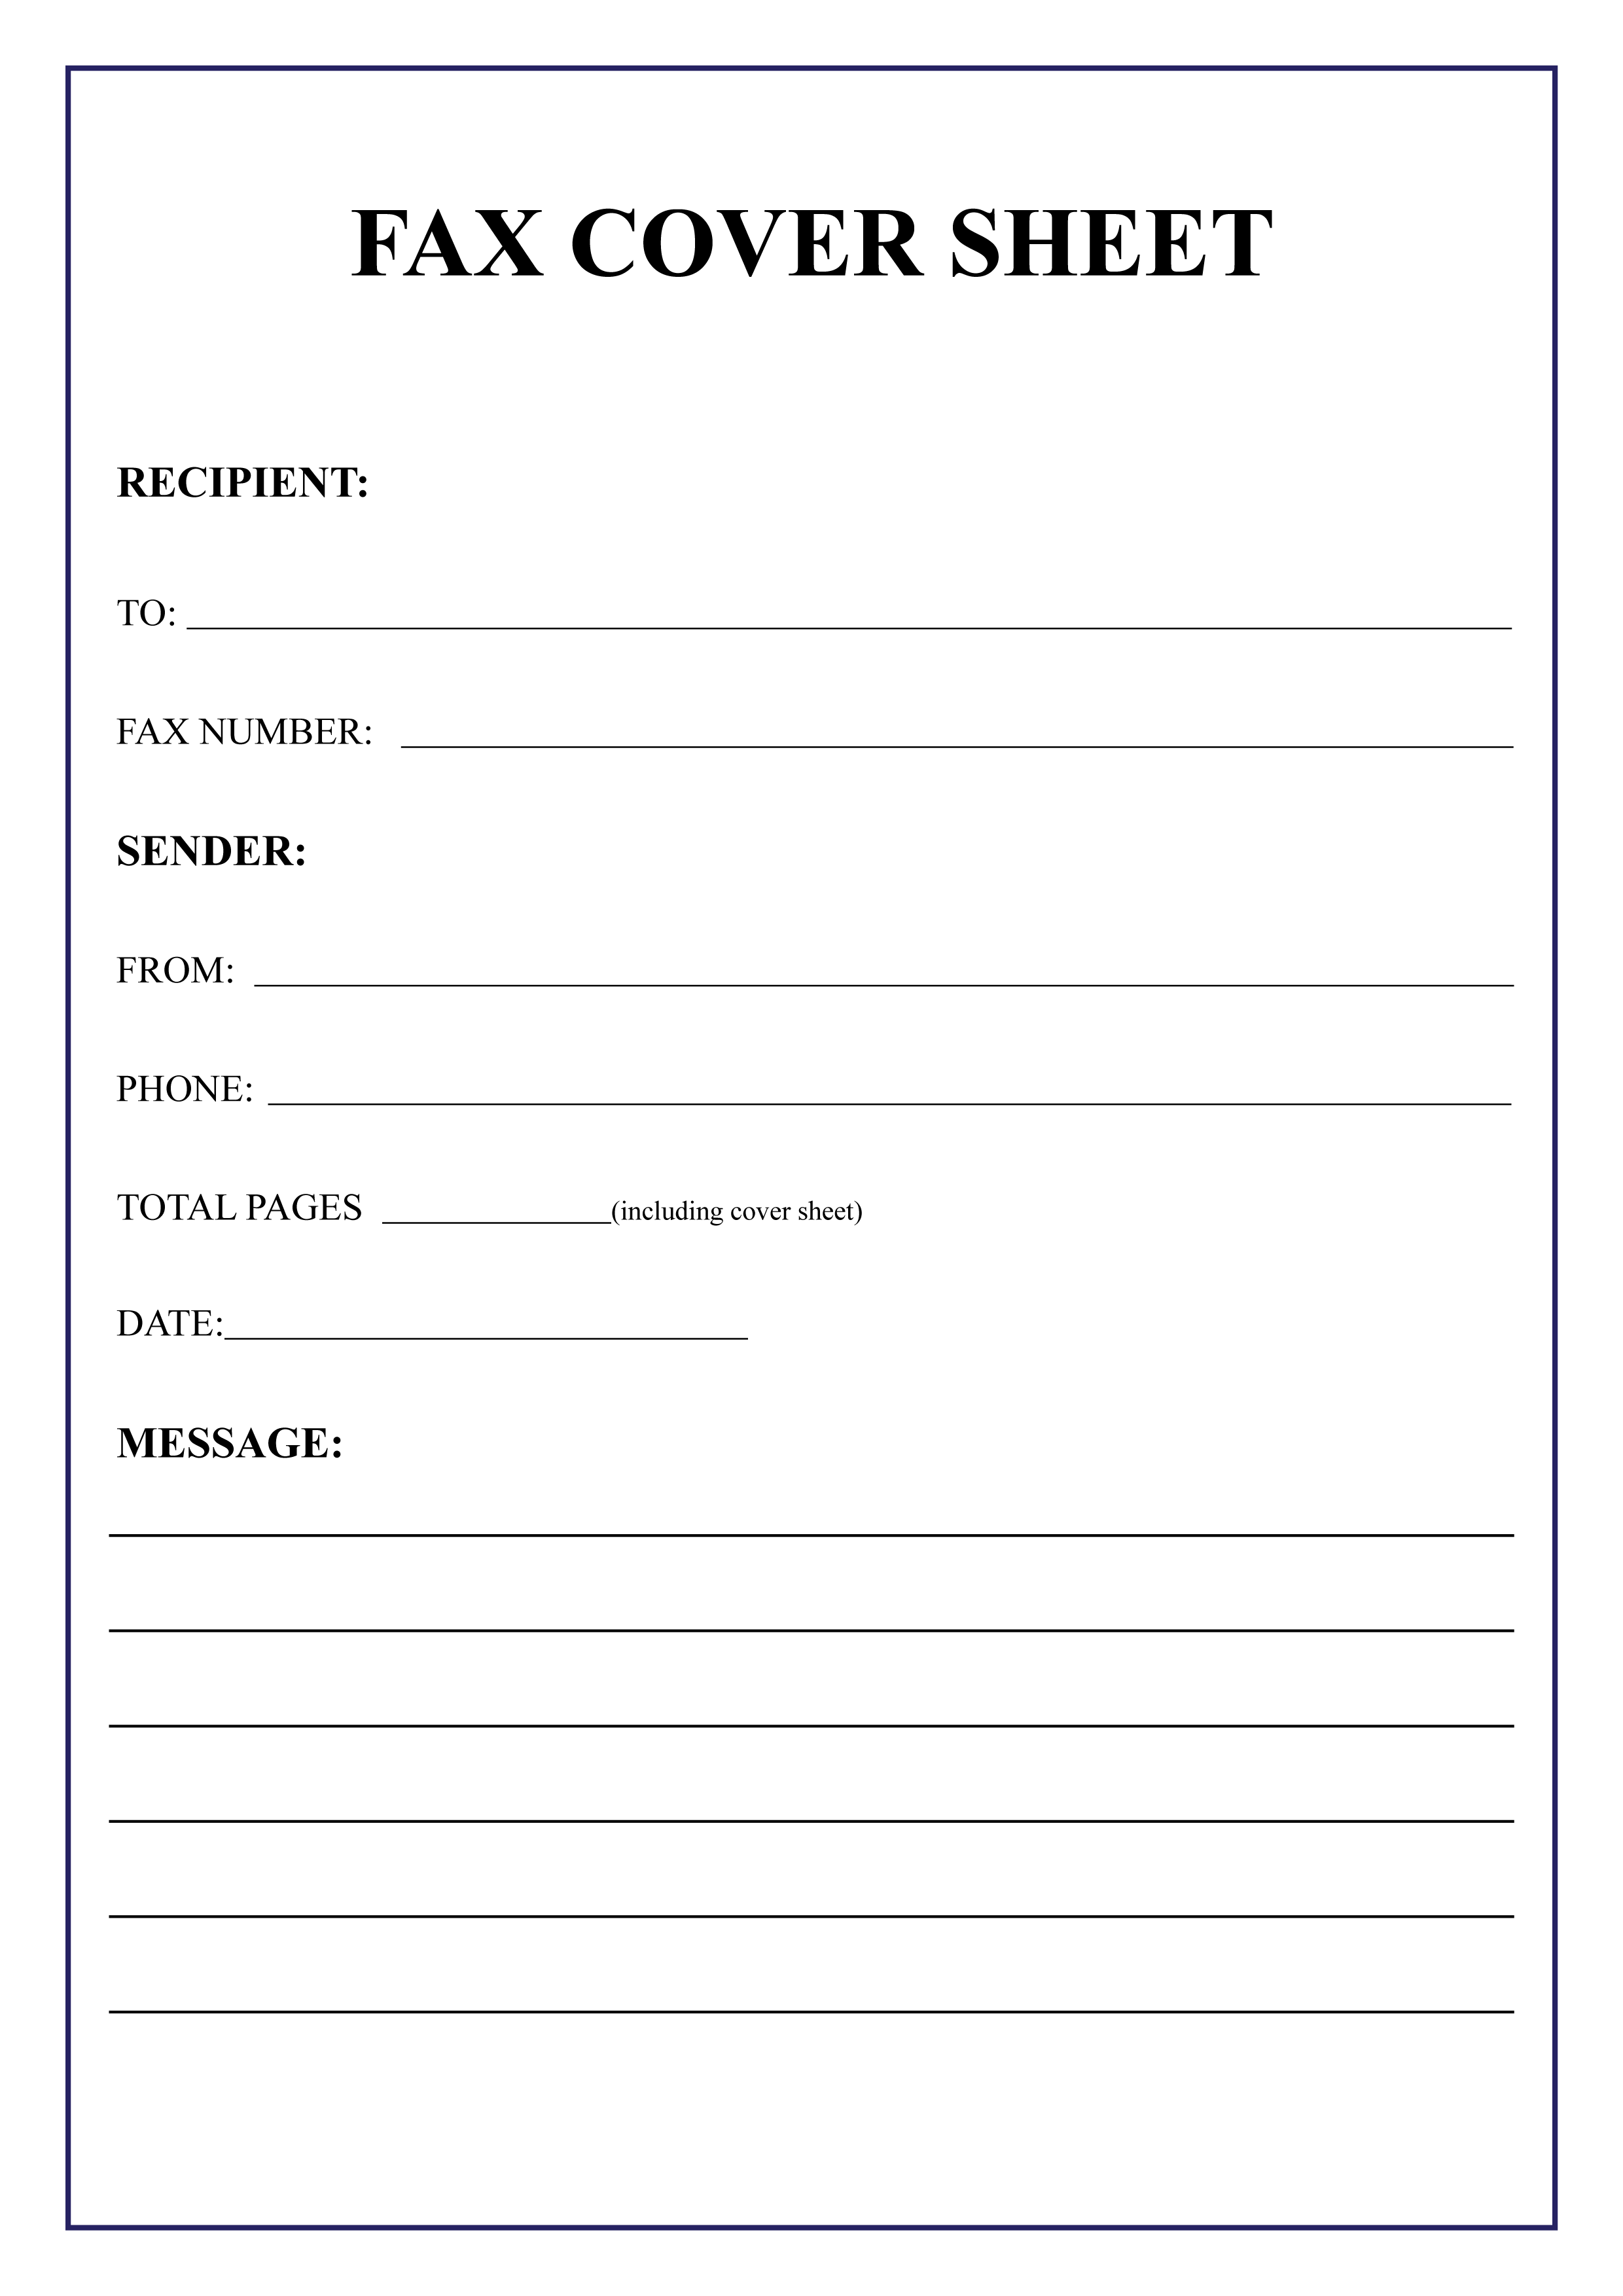 free fax cover sheet templates in pdf and word